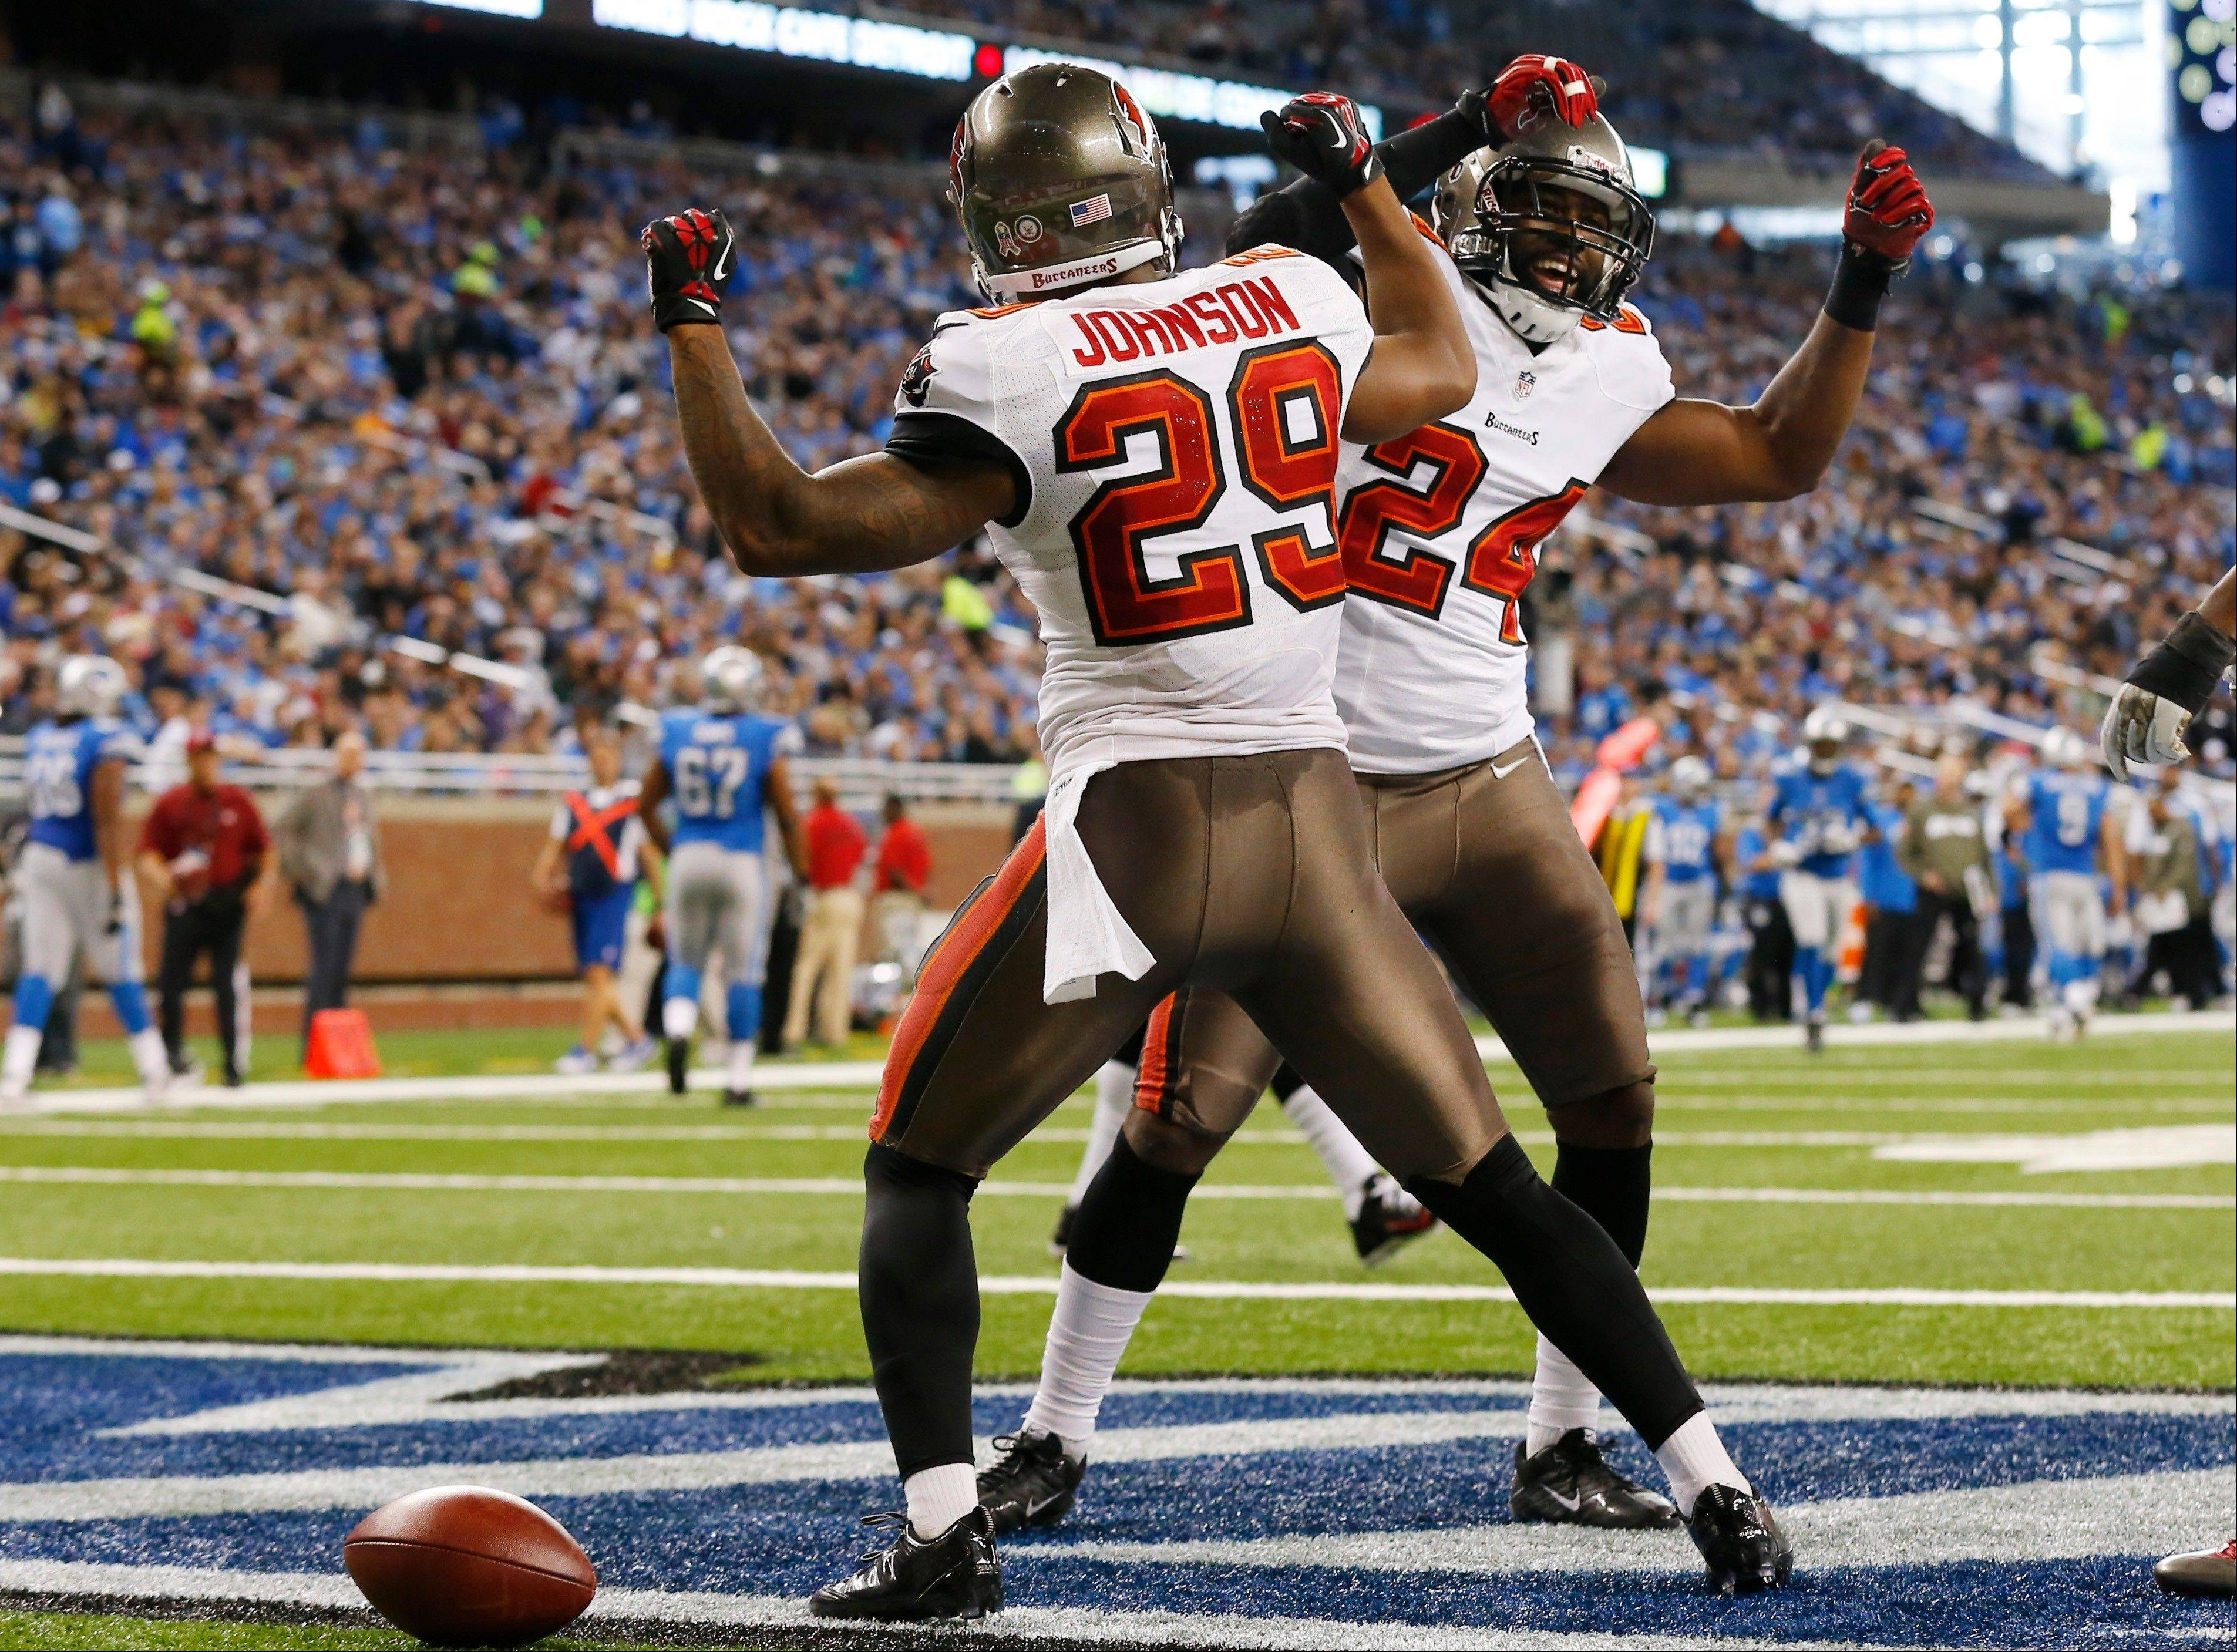 Tampa Bay Buccaneers cornerback Leonard Johnson (29) celebrates his 48-yard interception for a touchdown with teammate Darrelle Revis during the first half of an NFL football game against the Detroit Lions at Ford Field in Detroit, Sunday, Nov. 24, 2013.